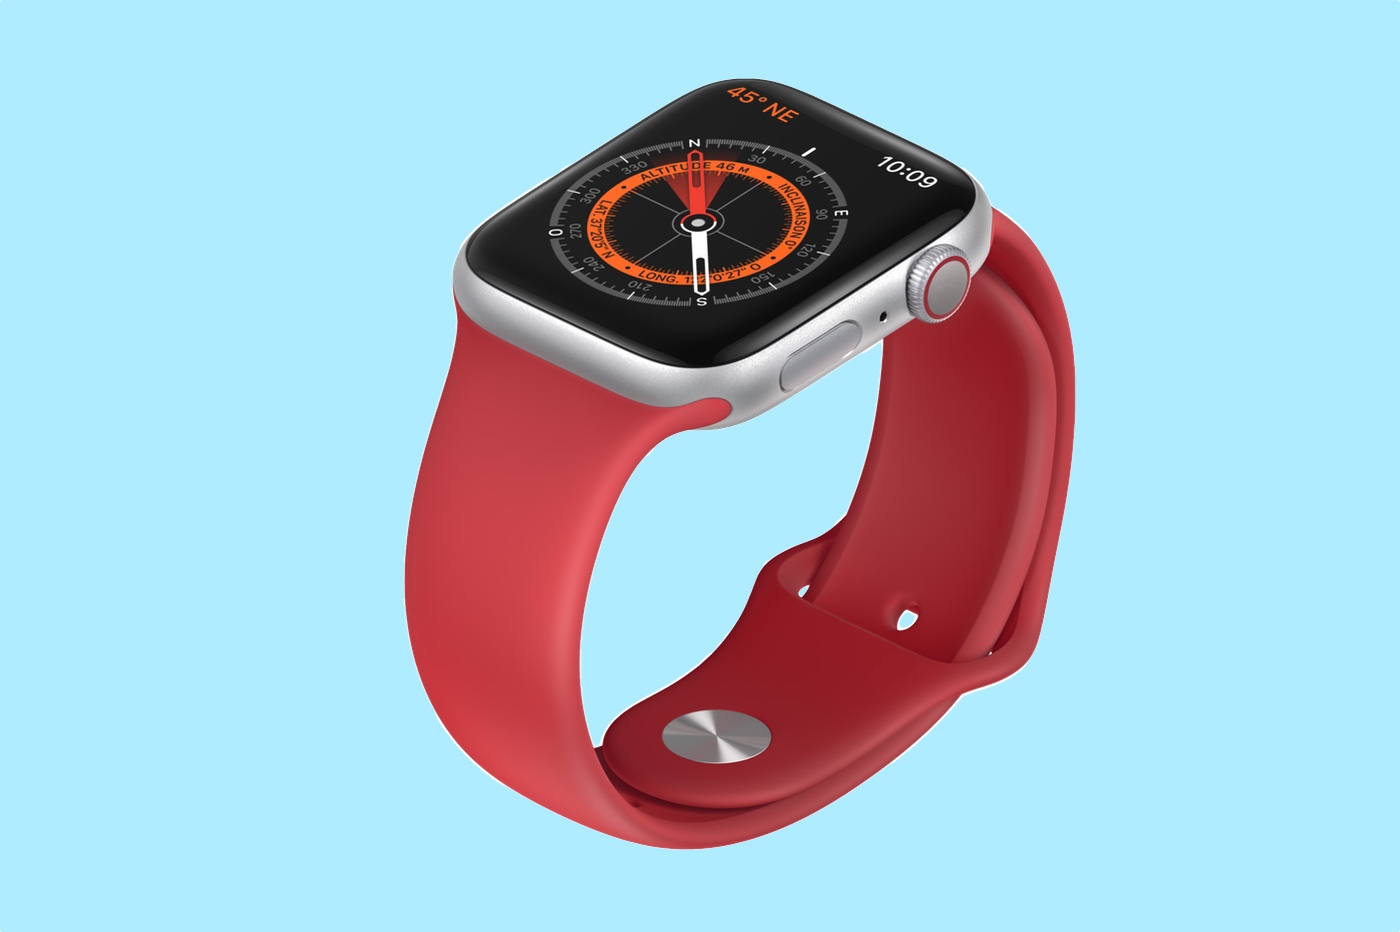 Boussole de l'Apple Watch 5